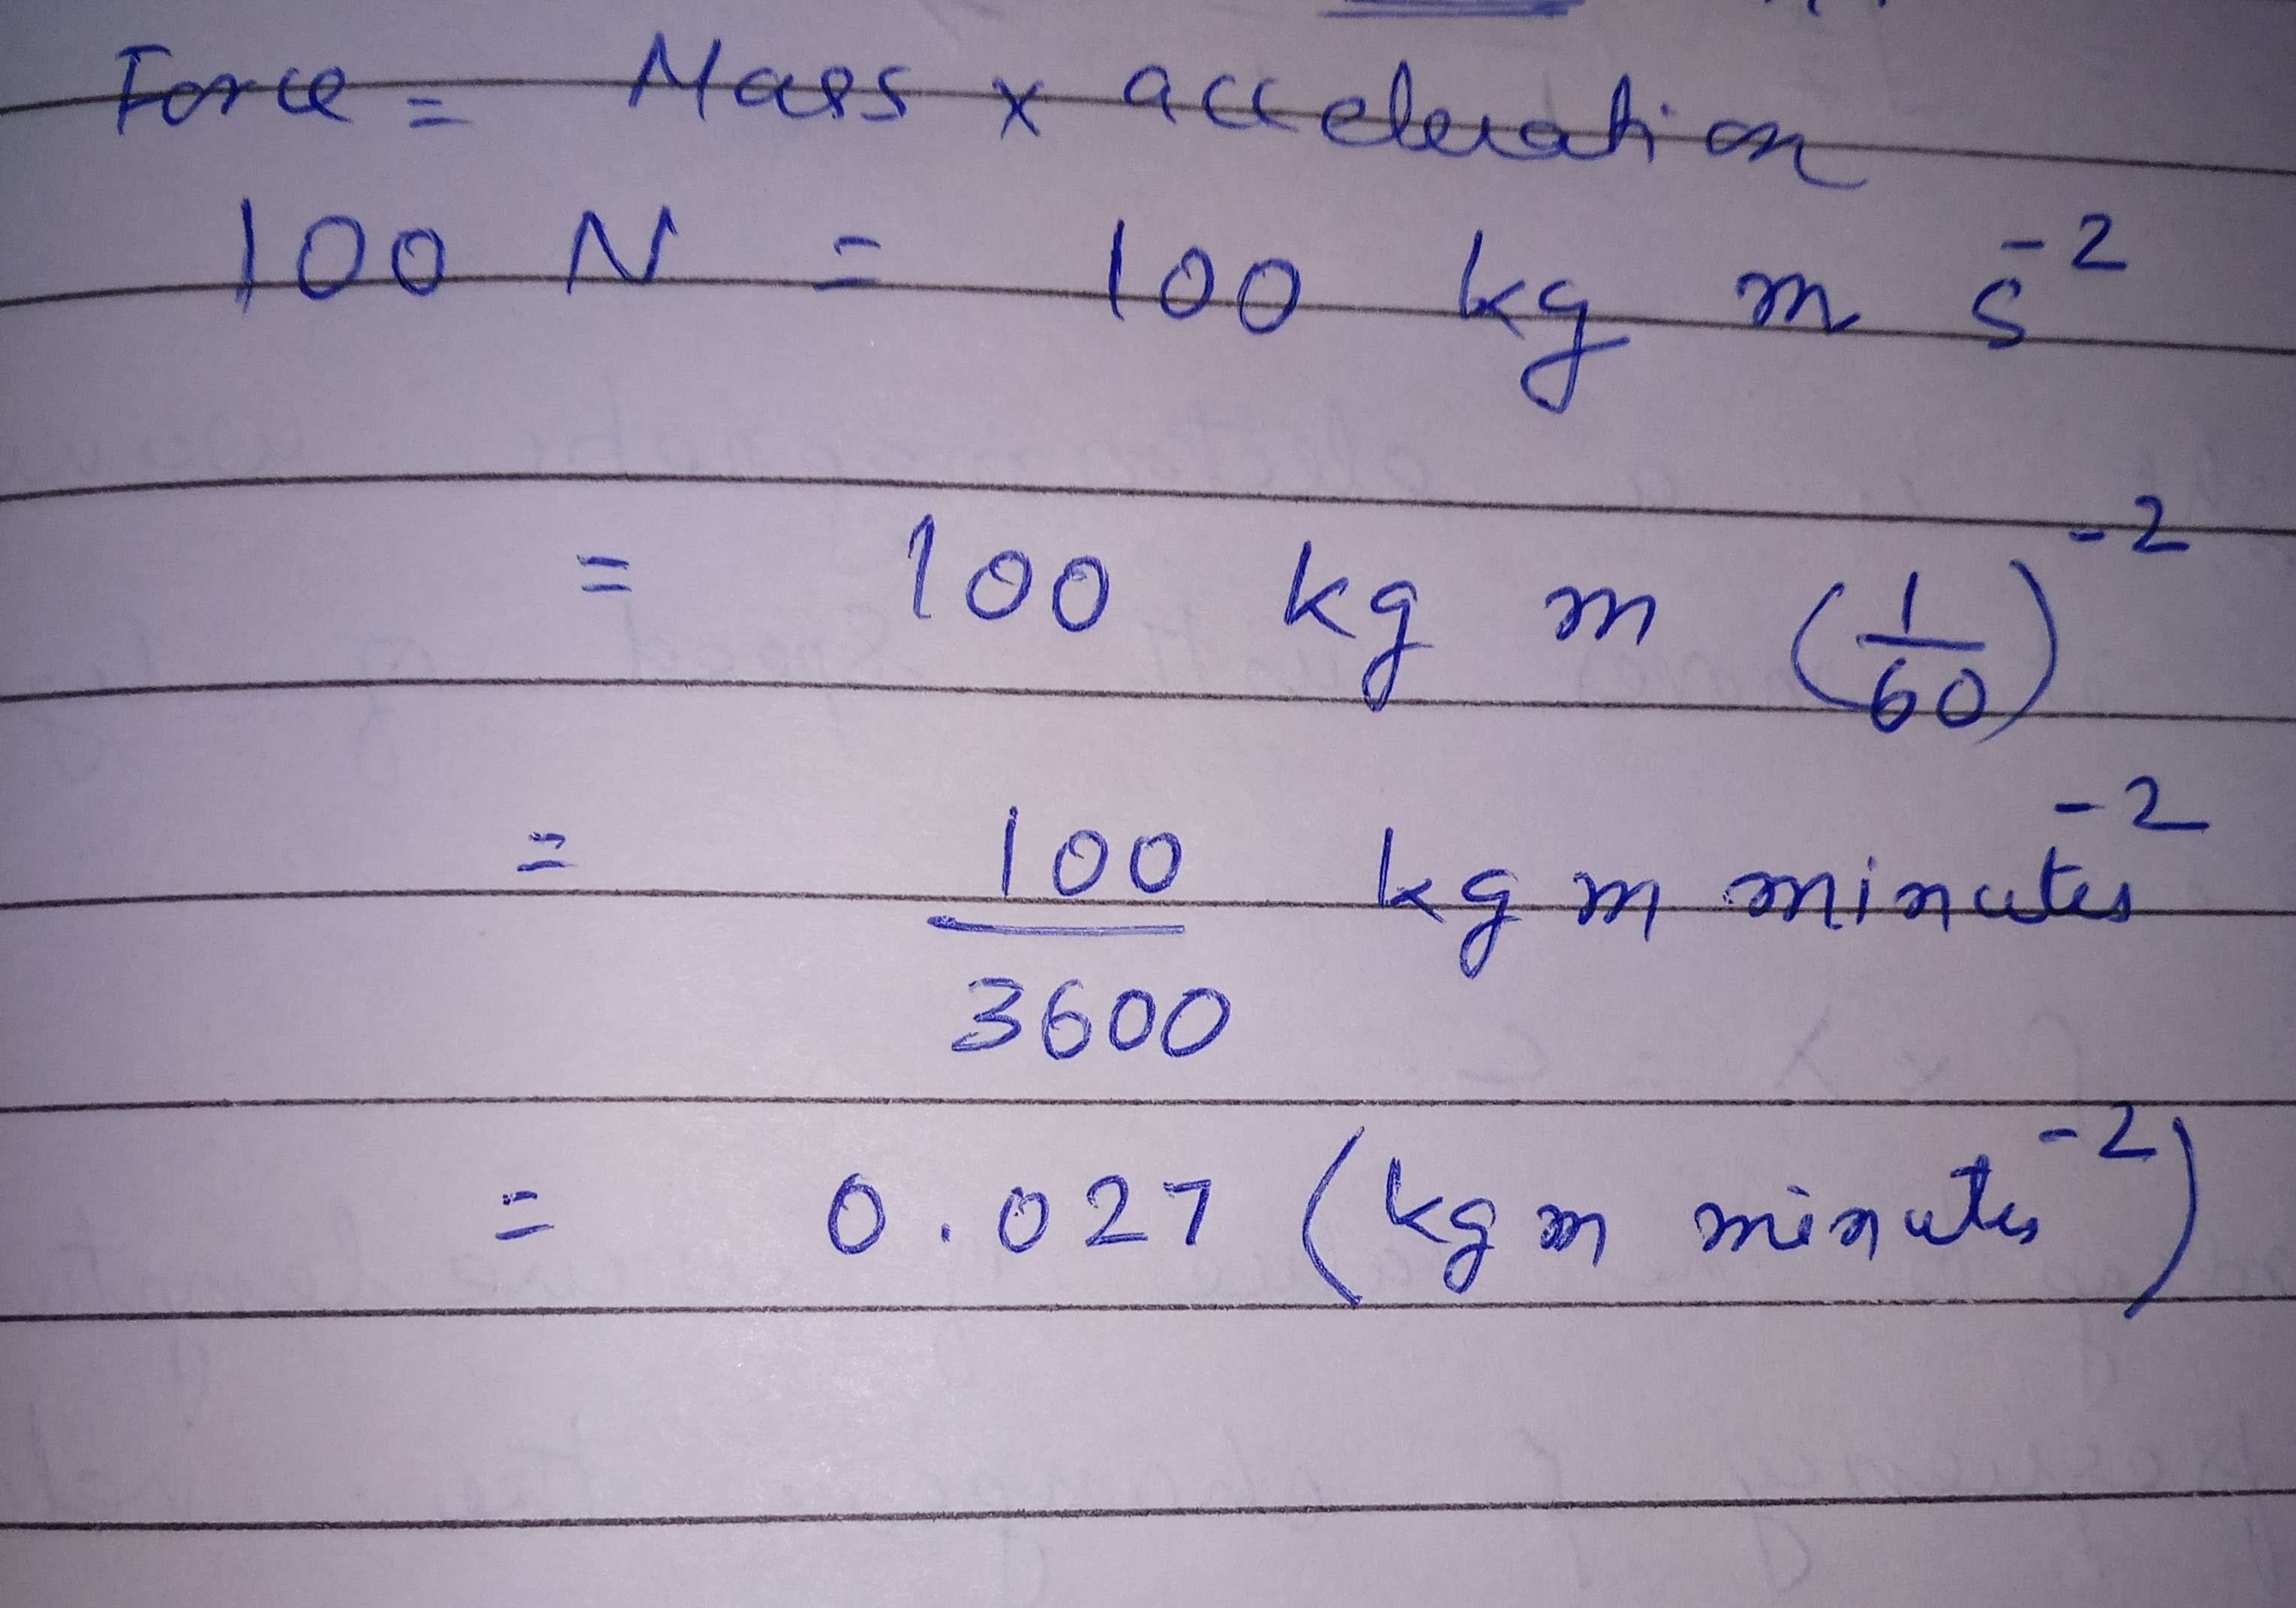 What is the force of 100 newton on a system based on metre